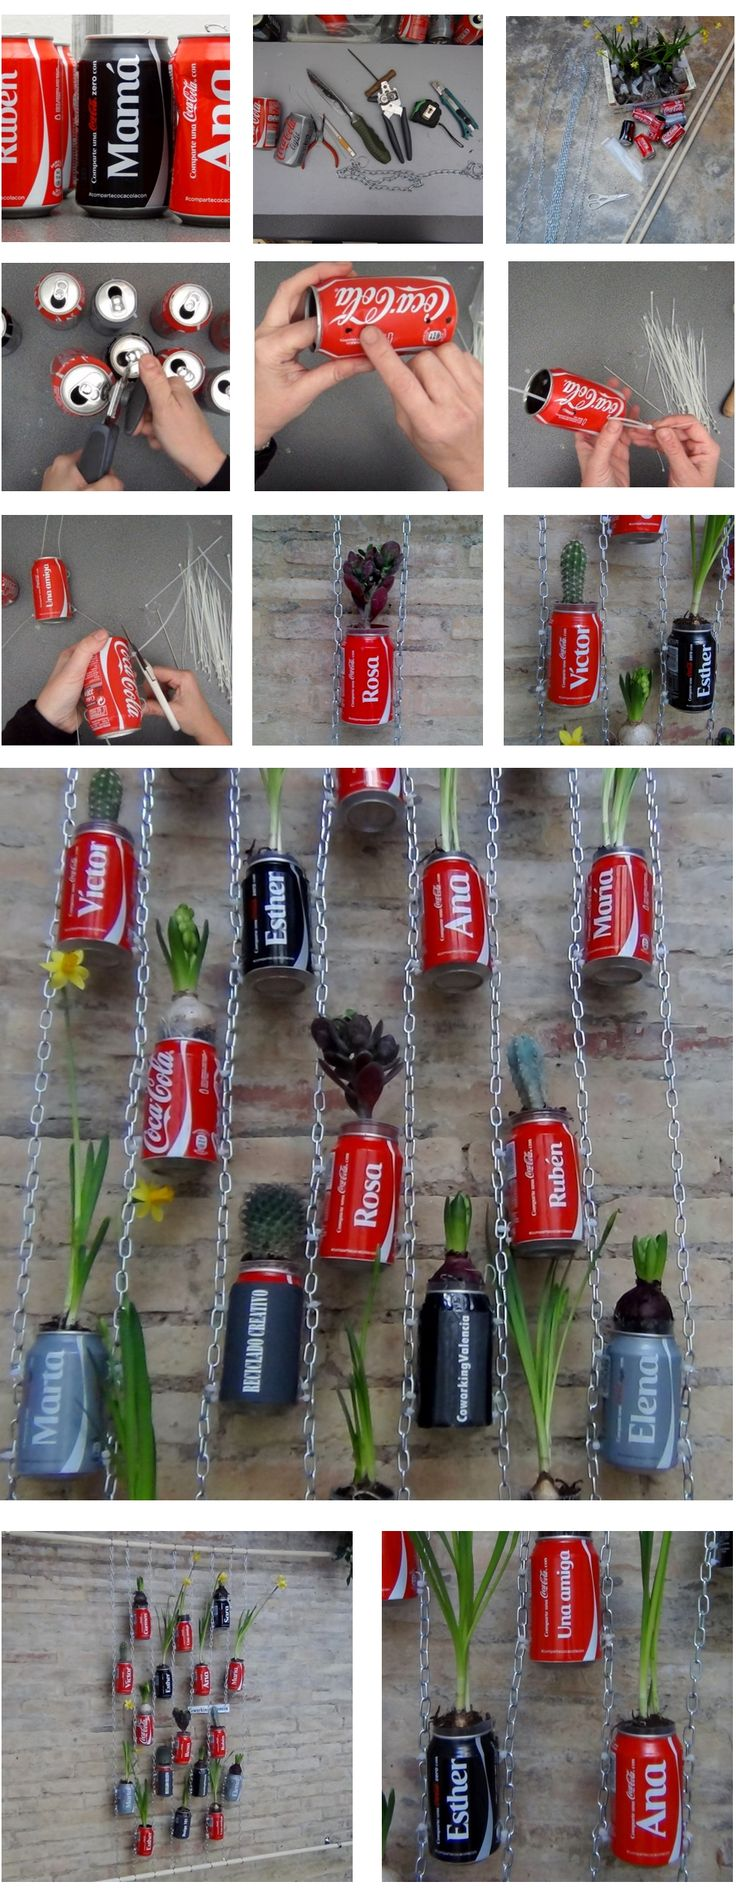 "Vertical garden made with recycled Coca Cola Cans! httpv://www.youtube.com/watch?v=y2vtEBjvE50 [symple_toggle title=""More Information"" state=""closed""] Website: Reciclado Creativo - The Reuse Factory ! Submitted by: Rosa Montesa ! [/symple_toggle]"